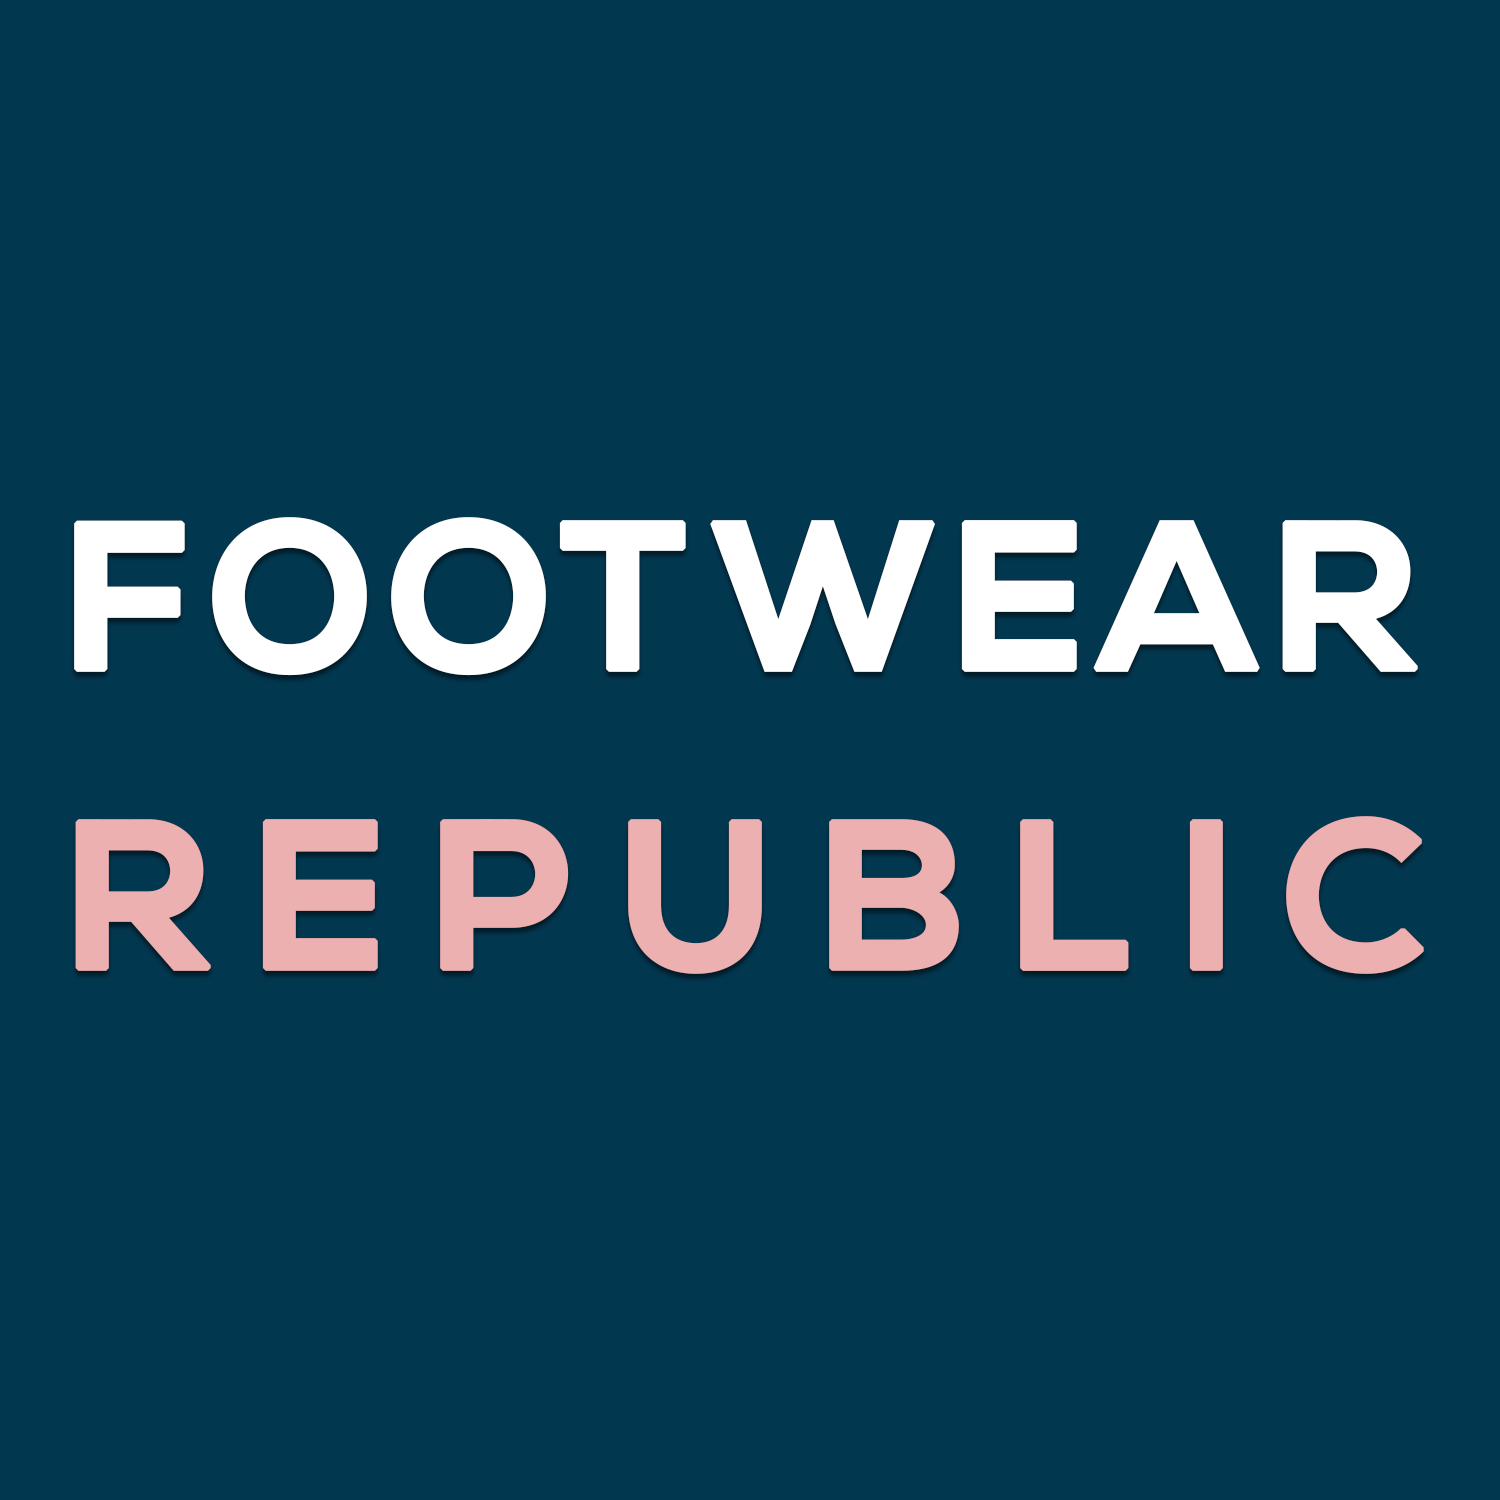 Footwear Republic